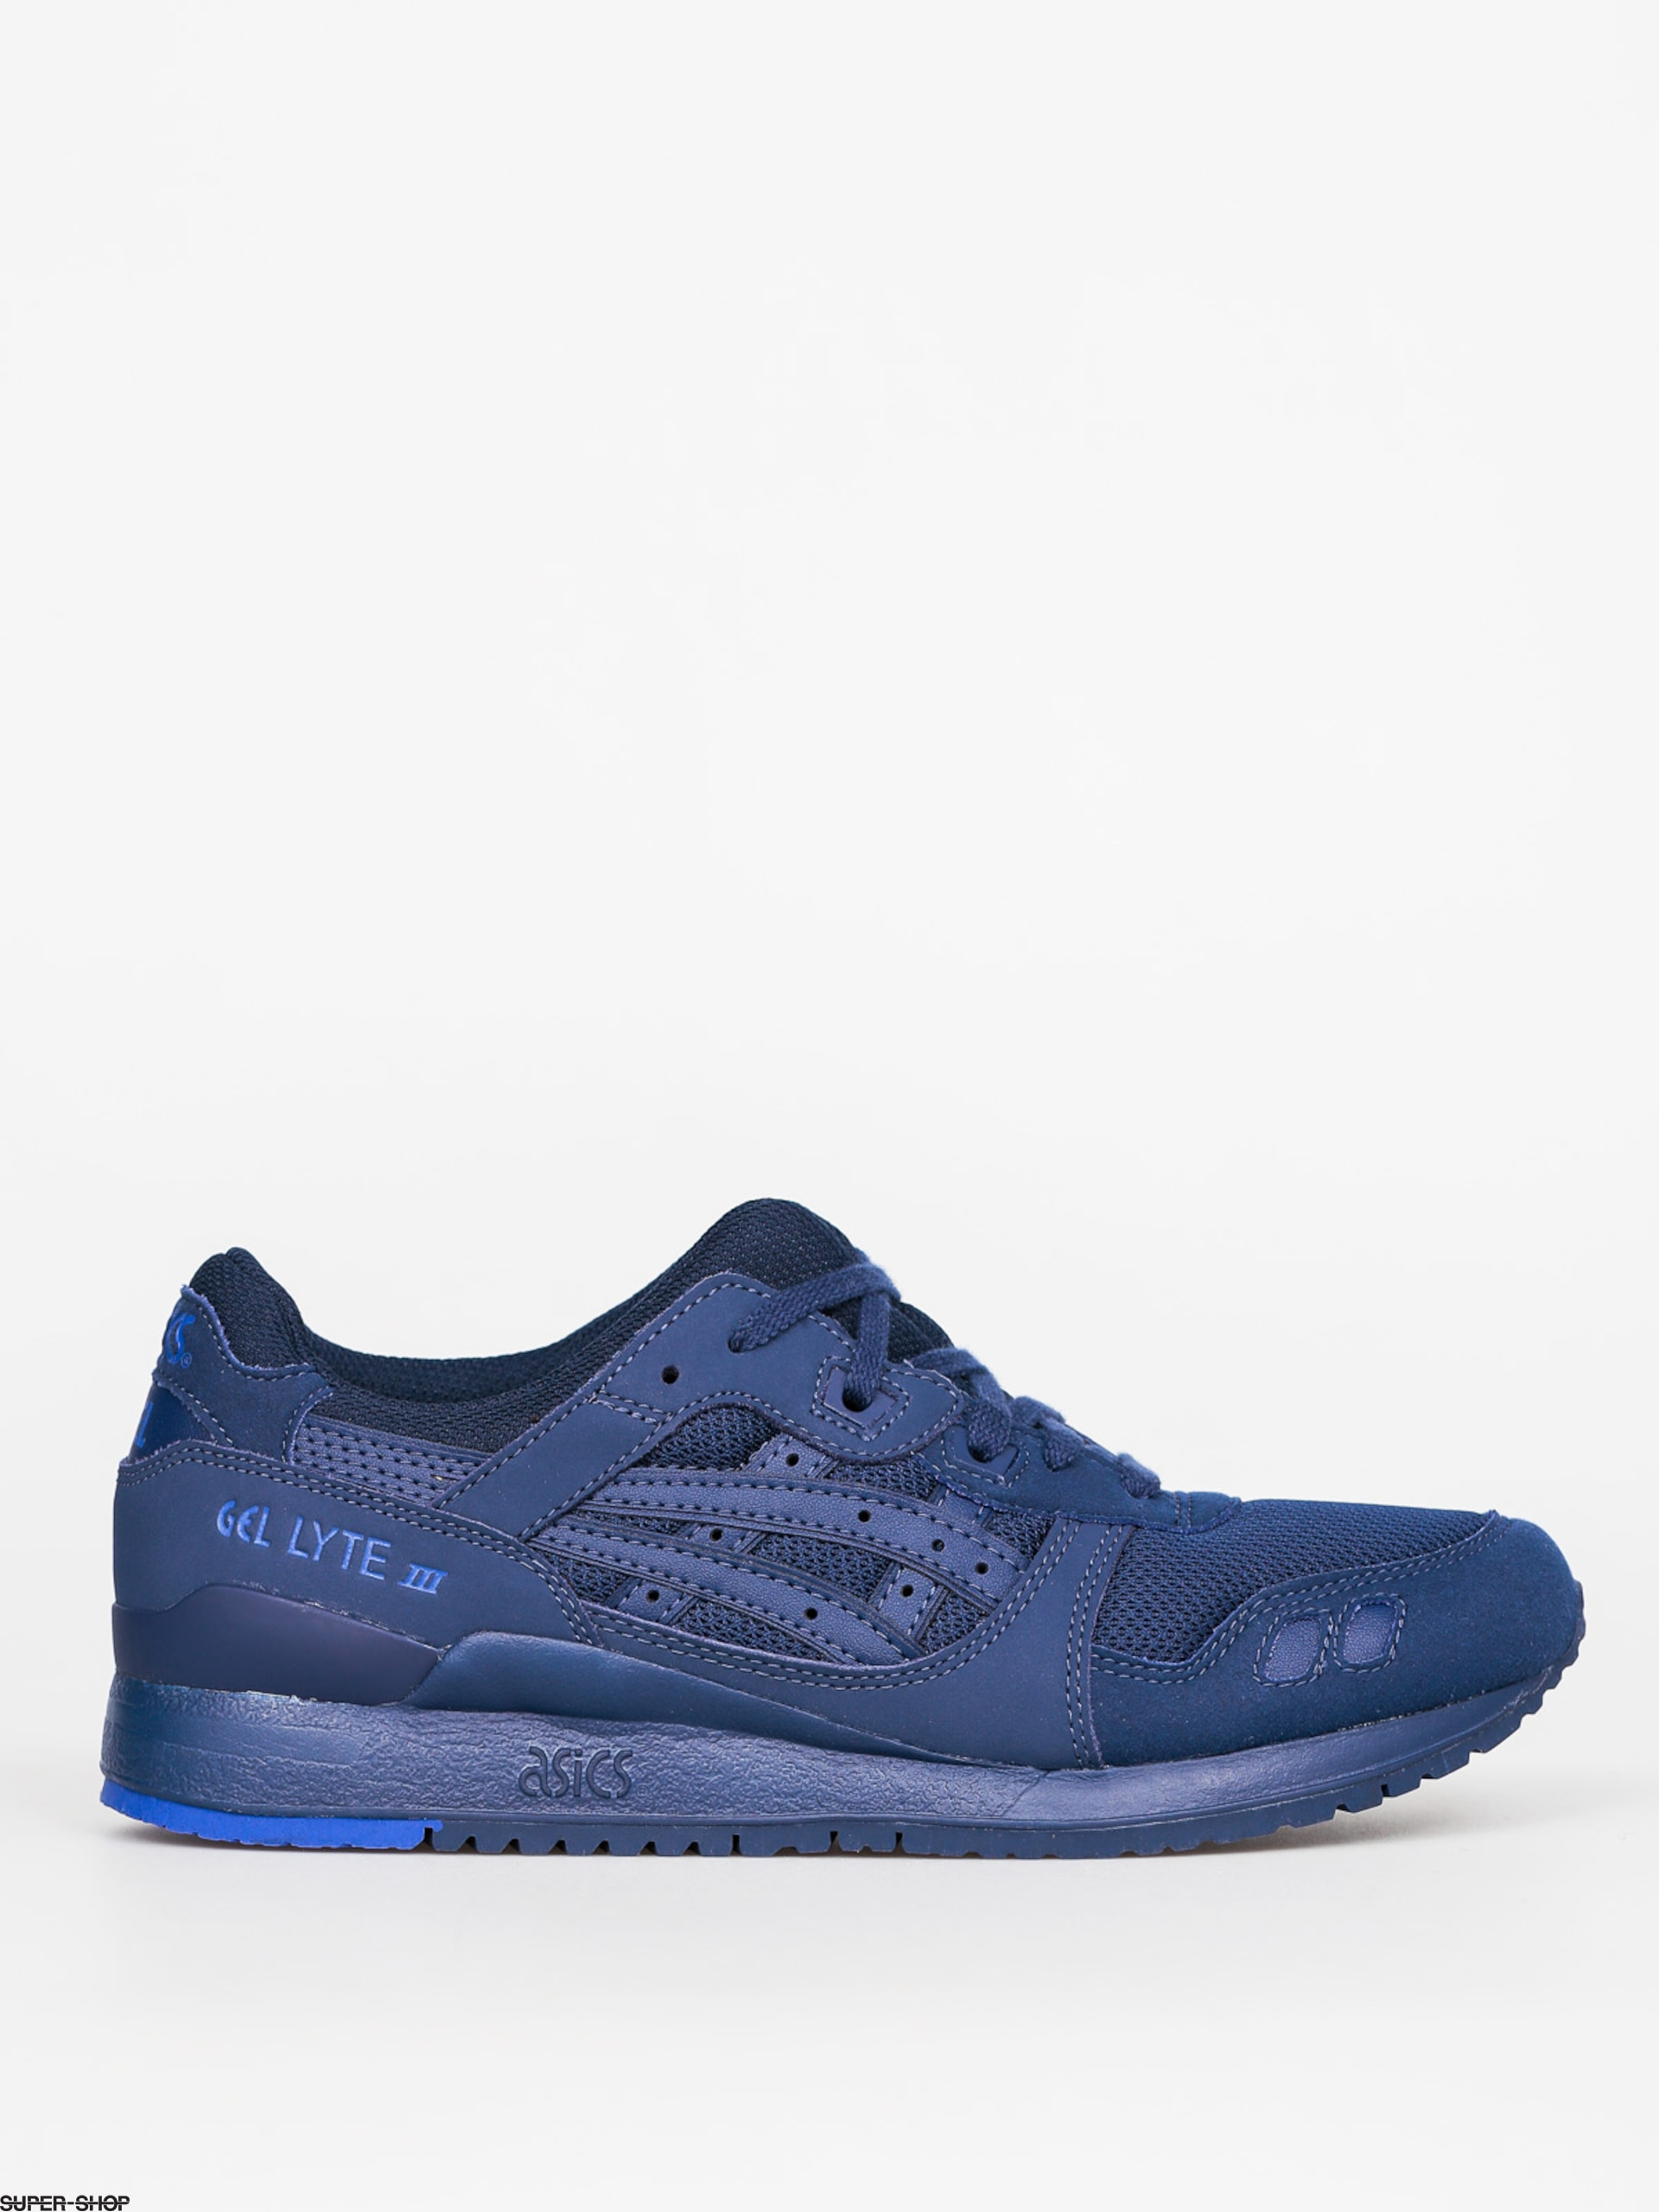 Asics Shoes Gel Lyte III (indigo blue/indigo blue)